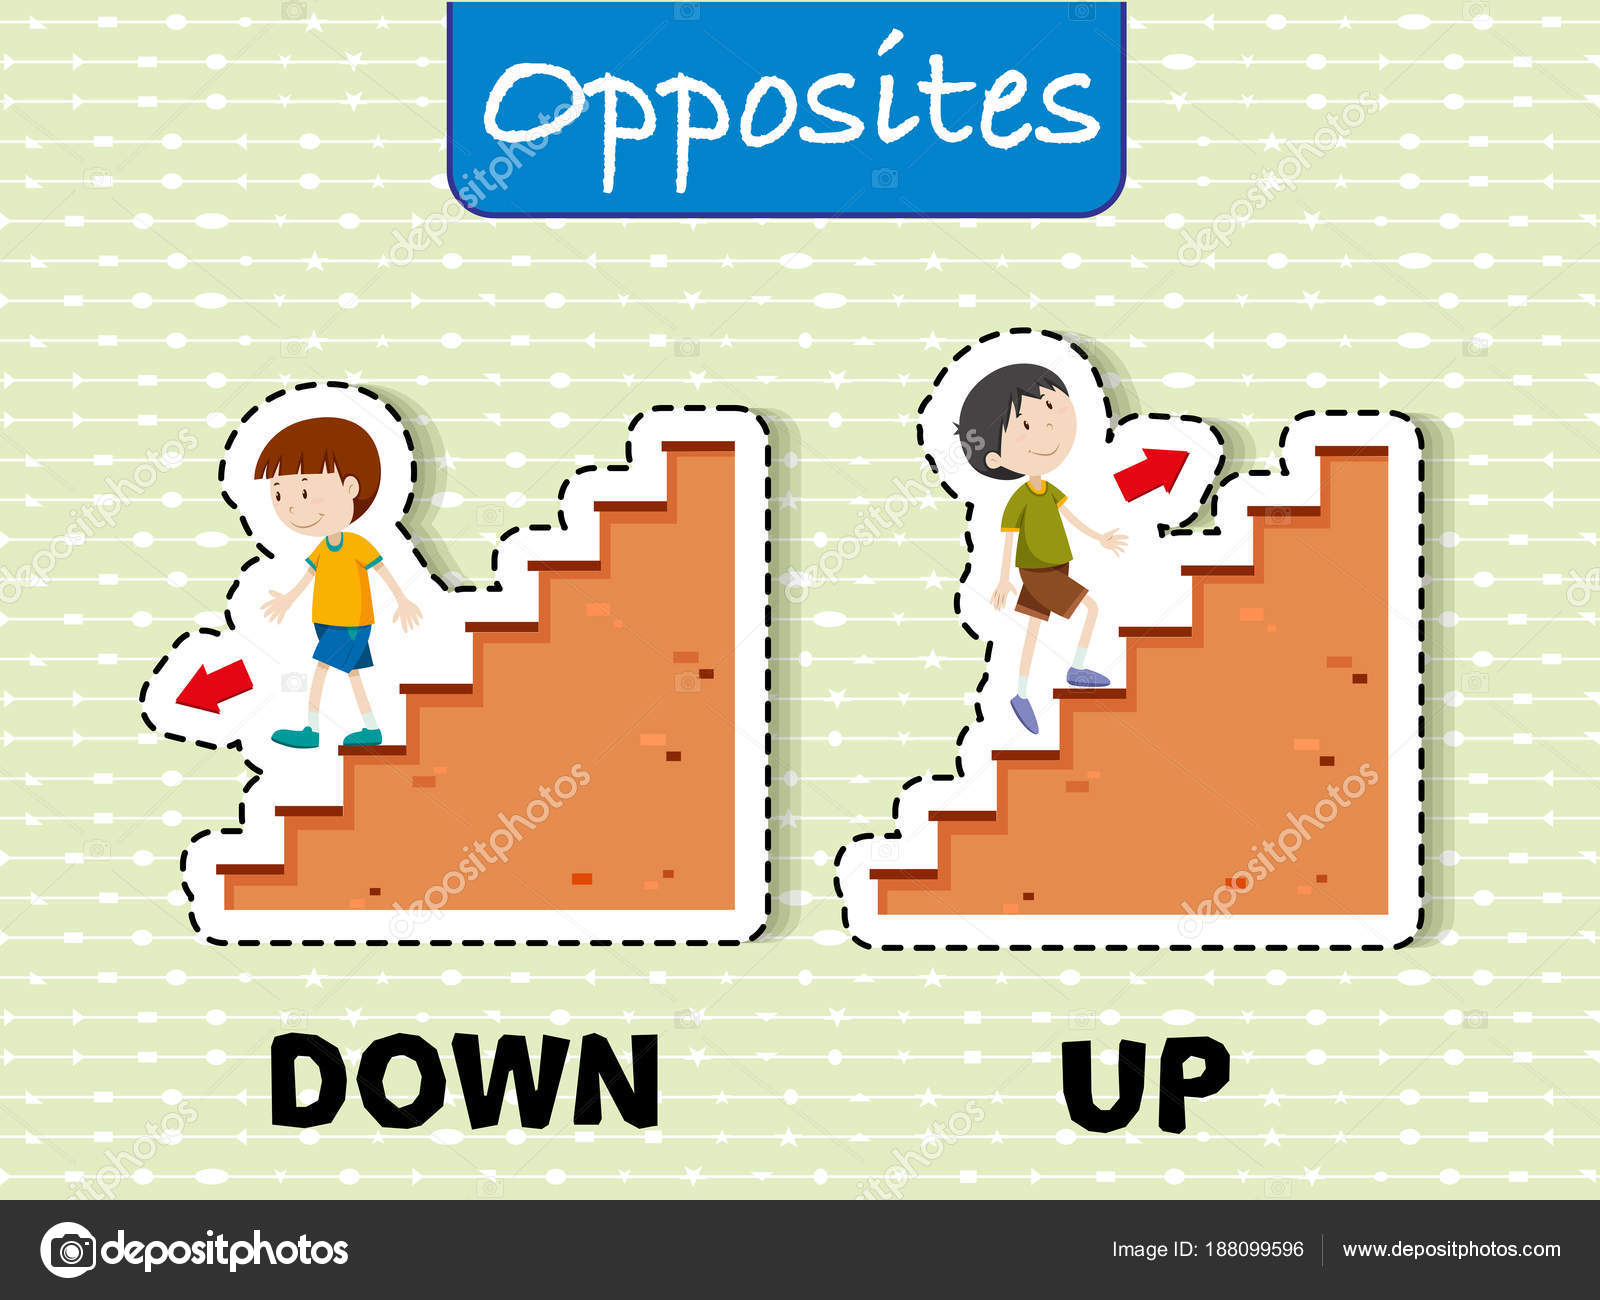 Opposite Words For Down And Up